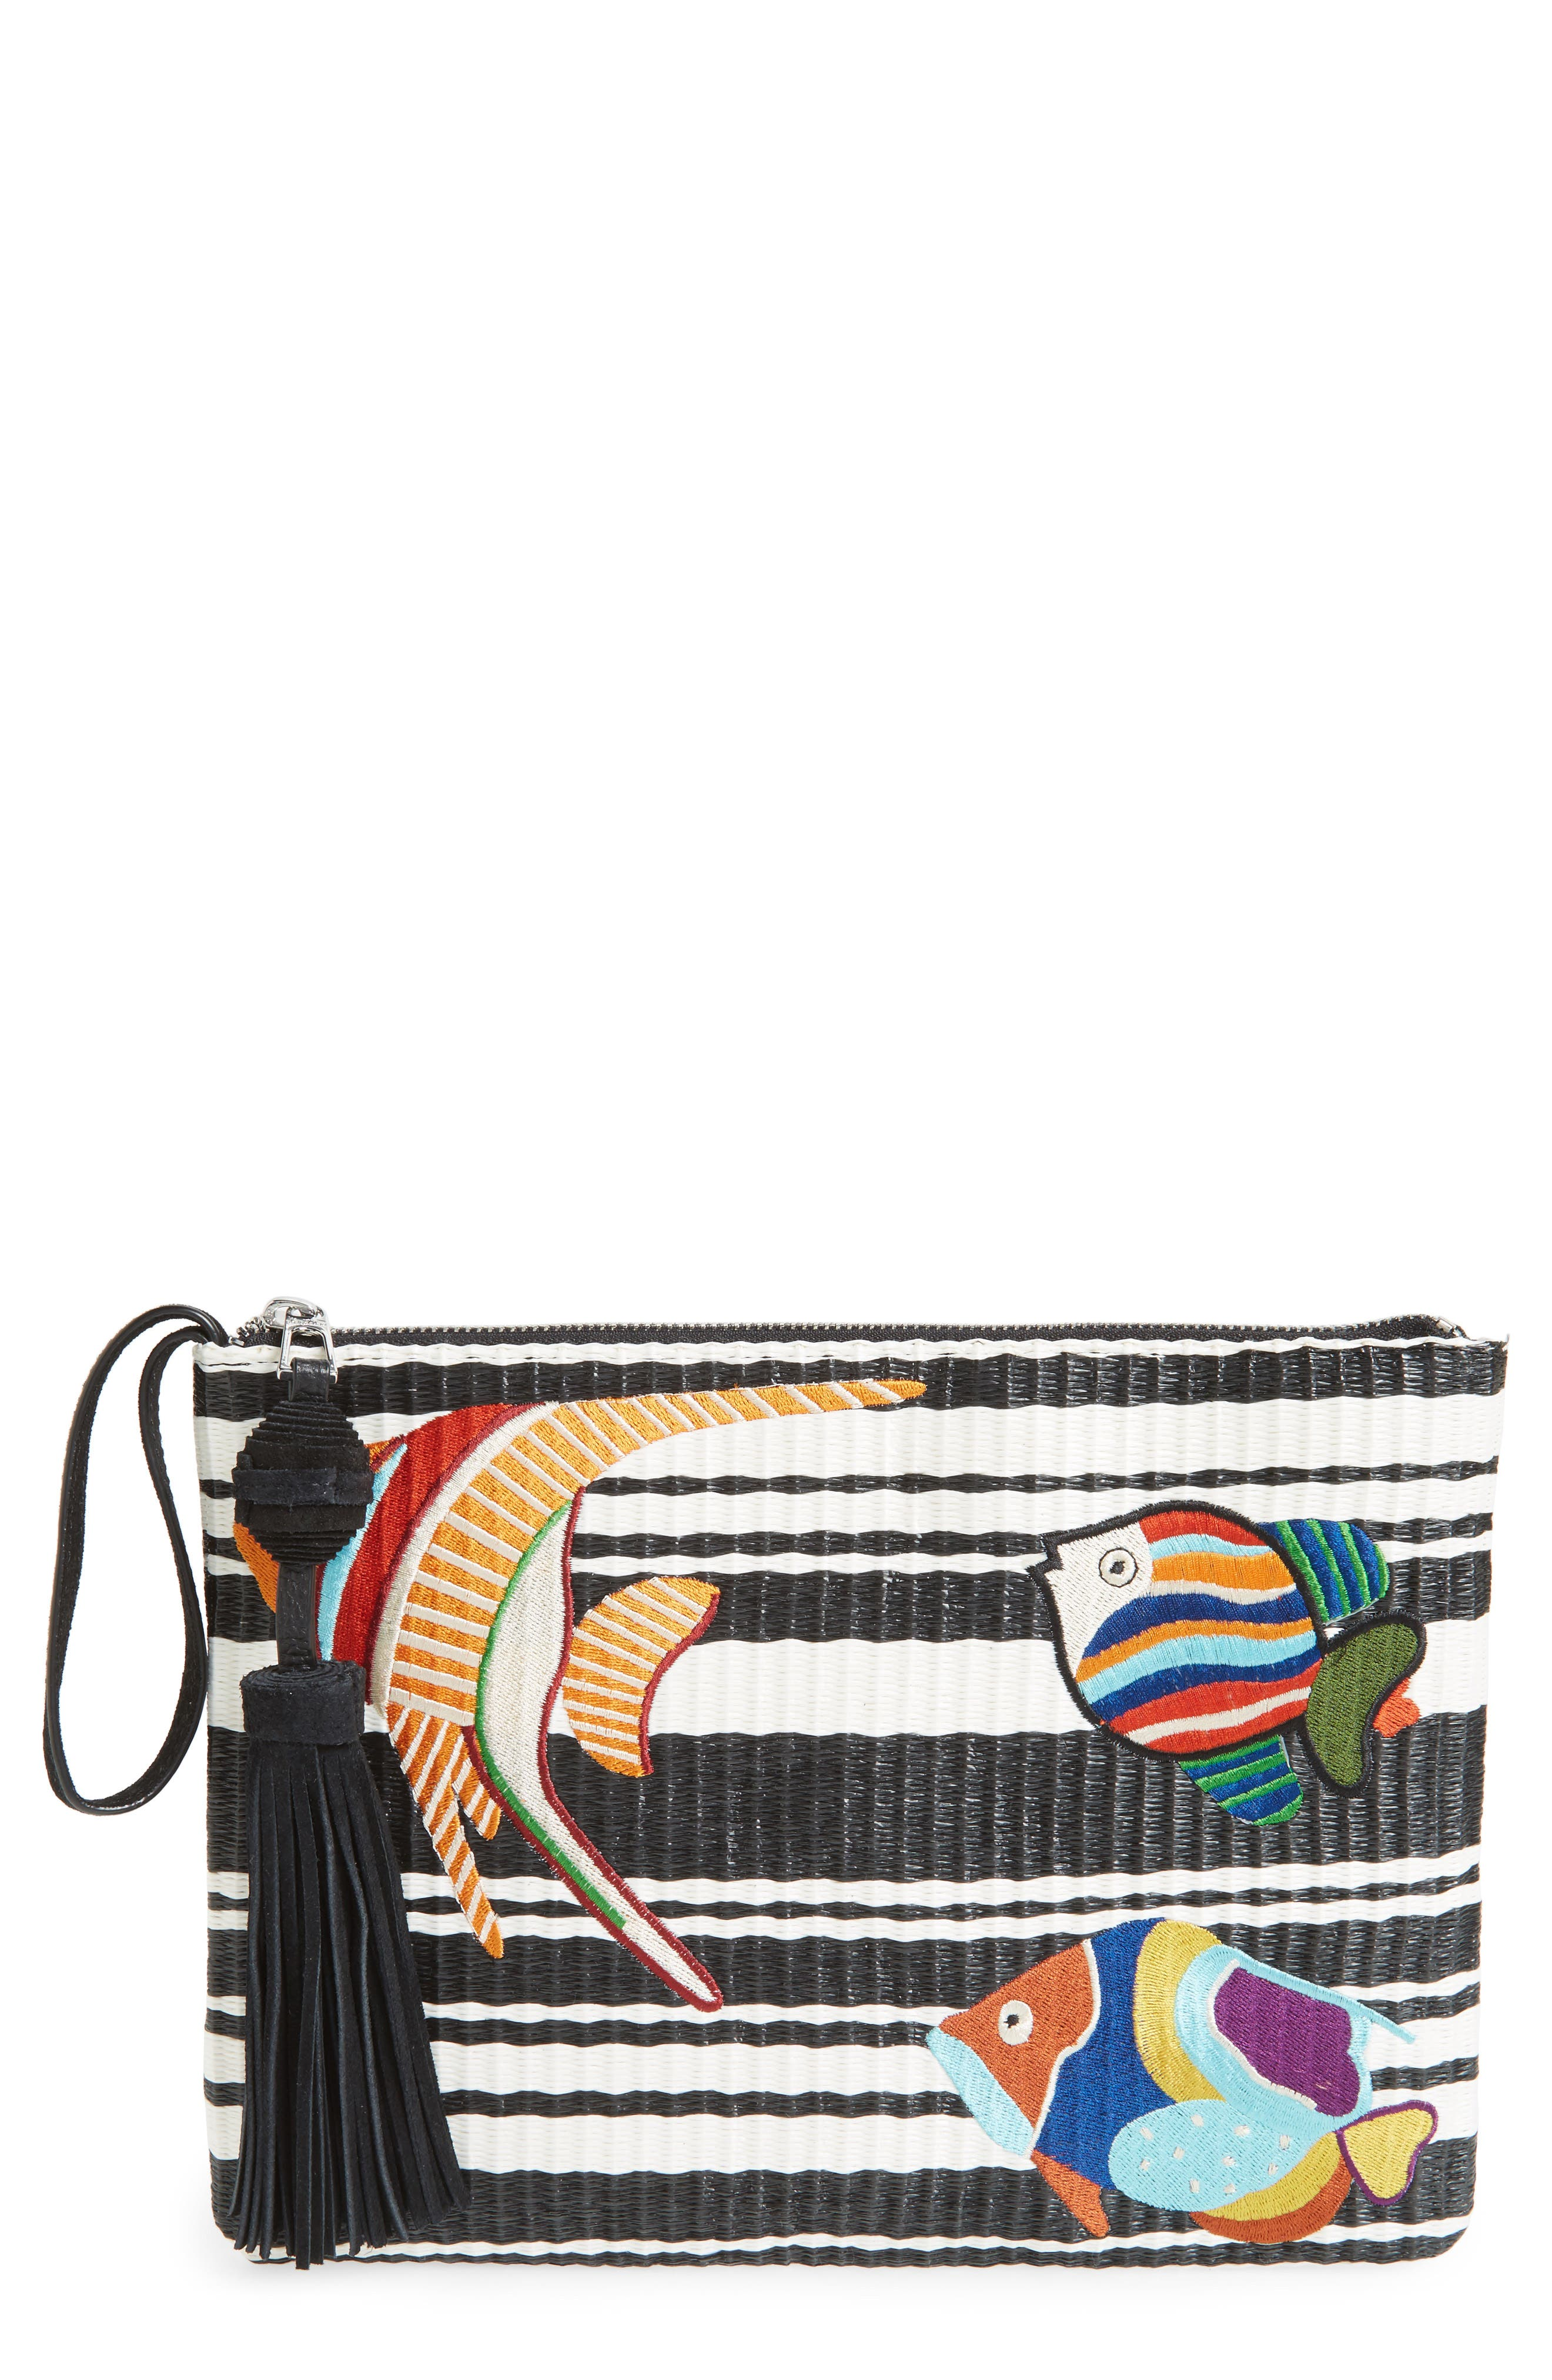 Sam Edelman Synthia Straw Clutch